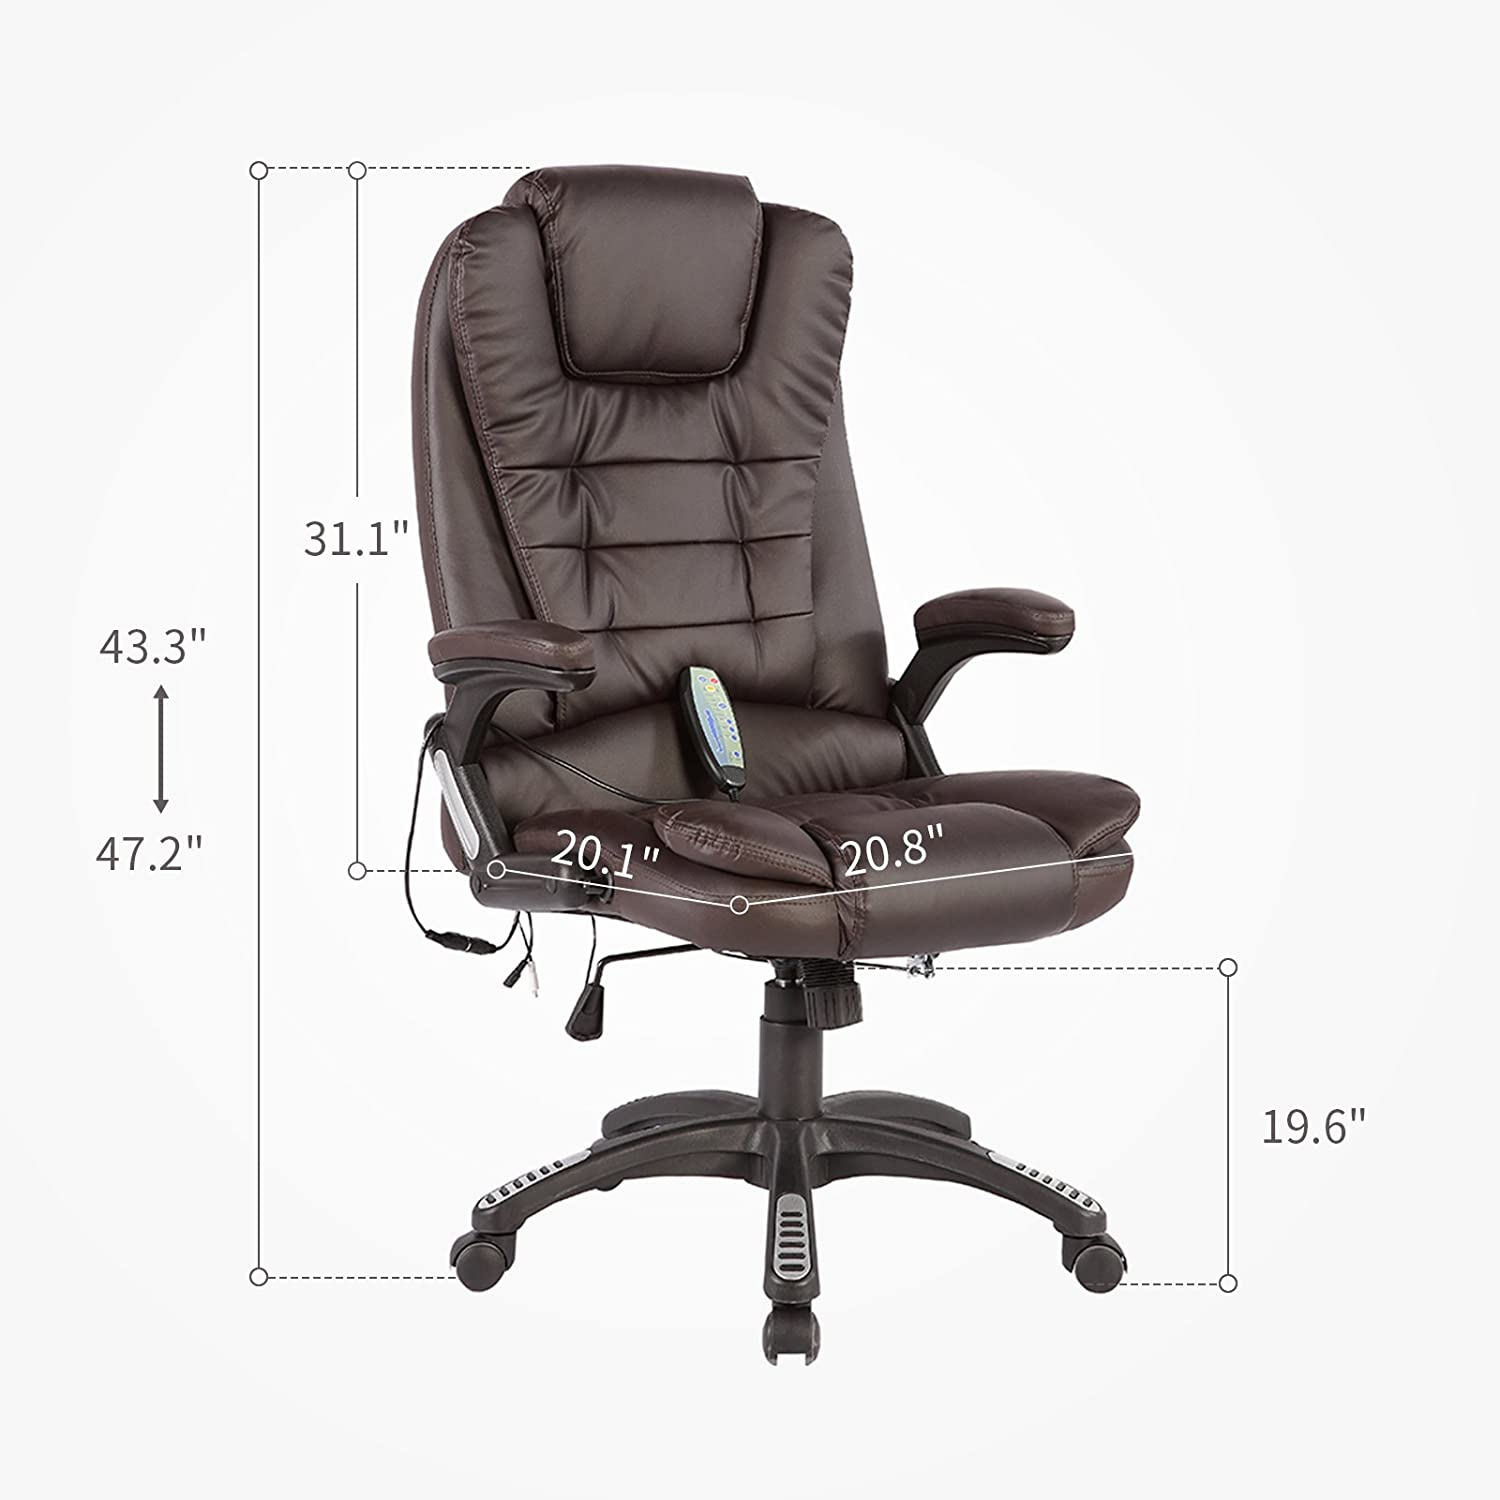 Murtisol Massage Gaming Chair Ergonomic Leather Office Chair Heated/Executive/ Adjustable High Back Brown